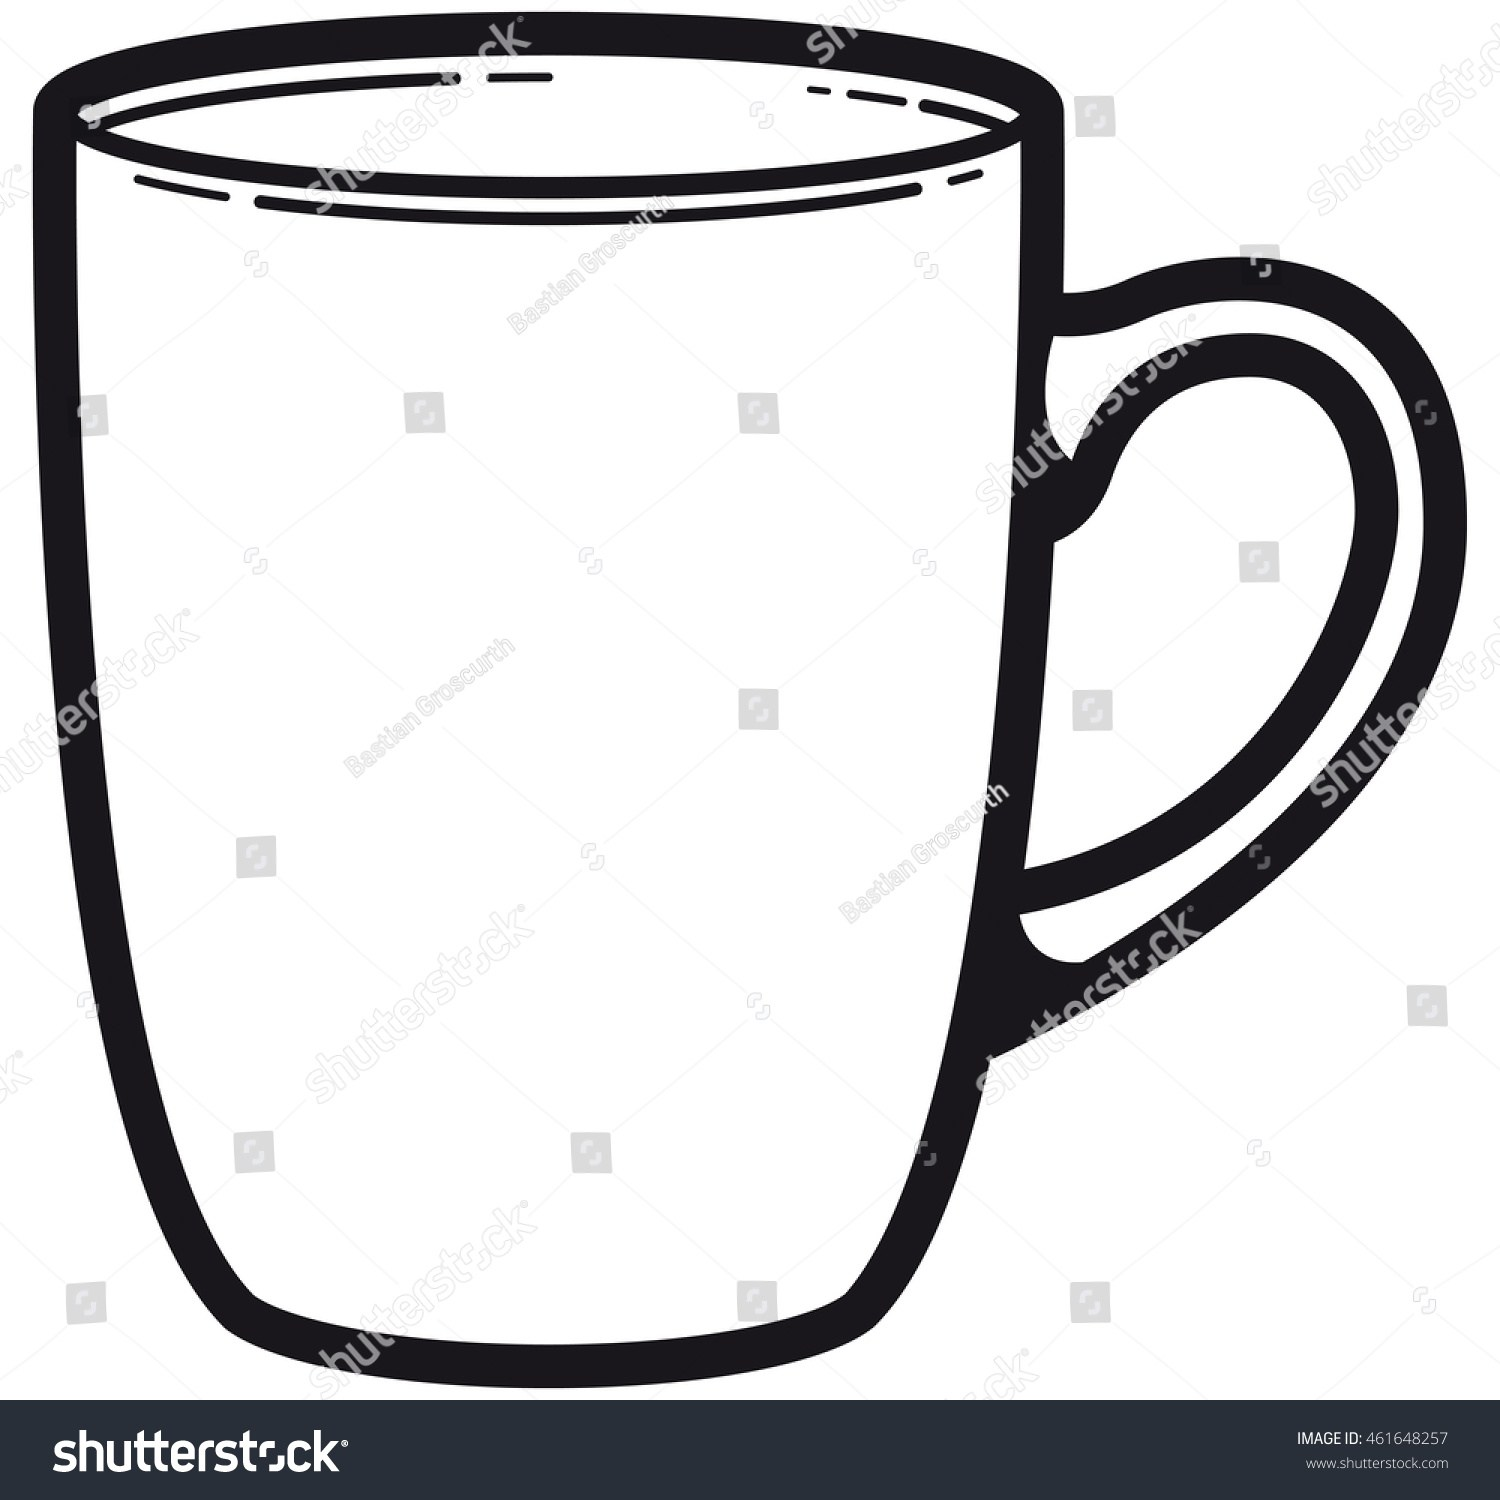 Clipart black and white cup 3 » Clipart Portal.